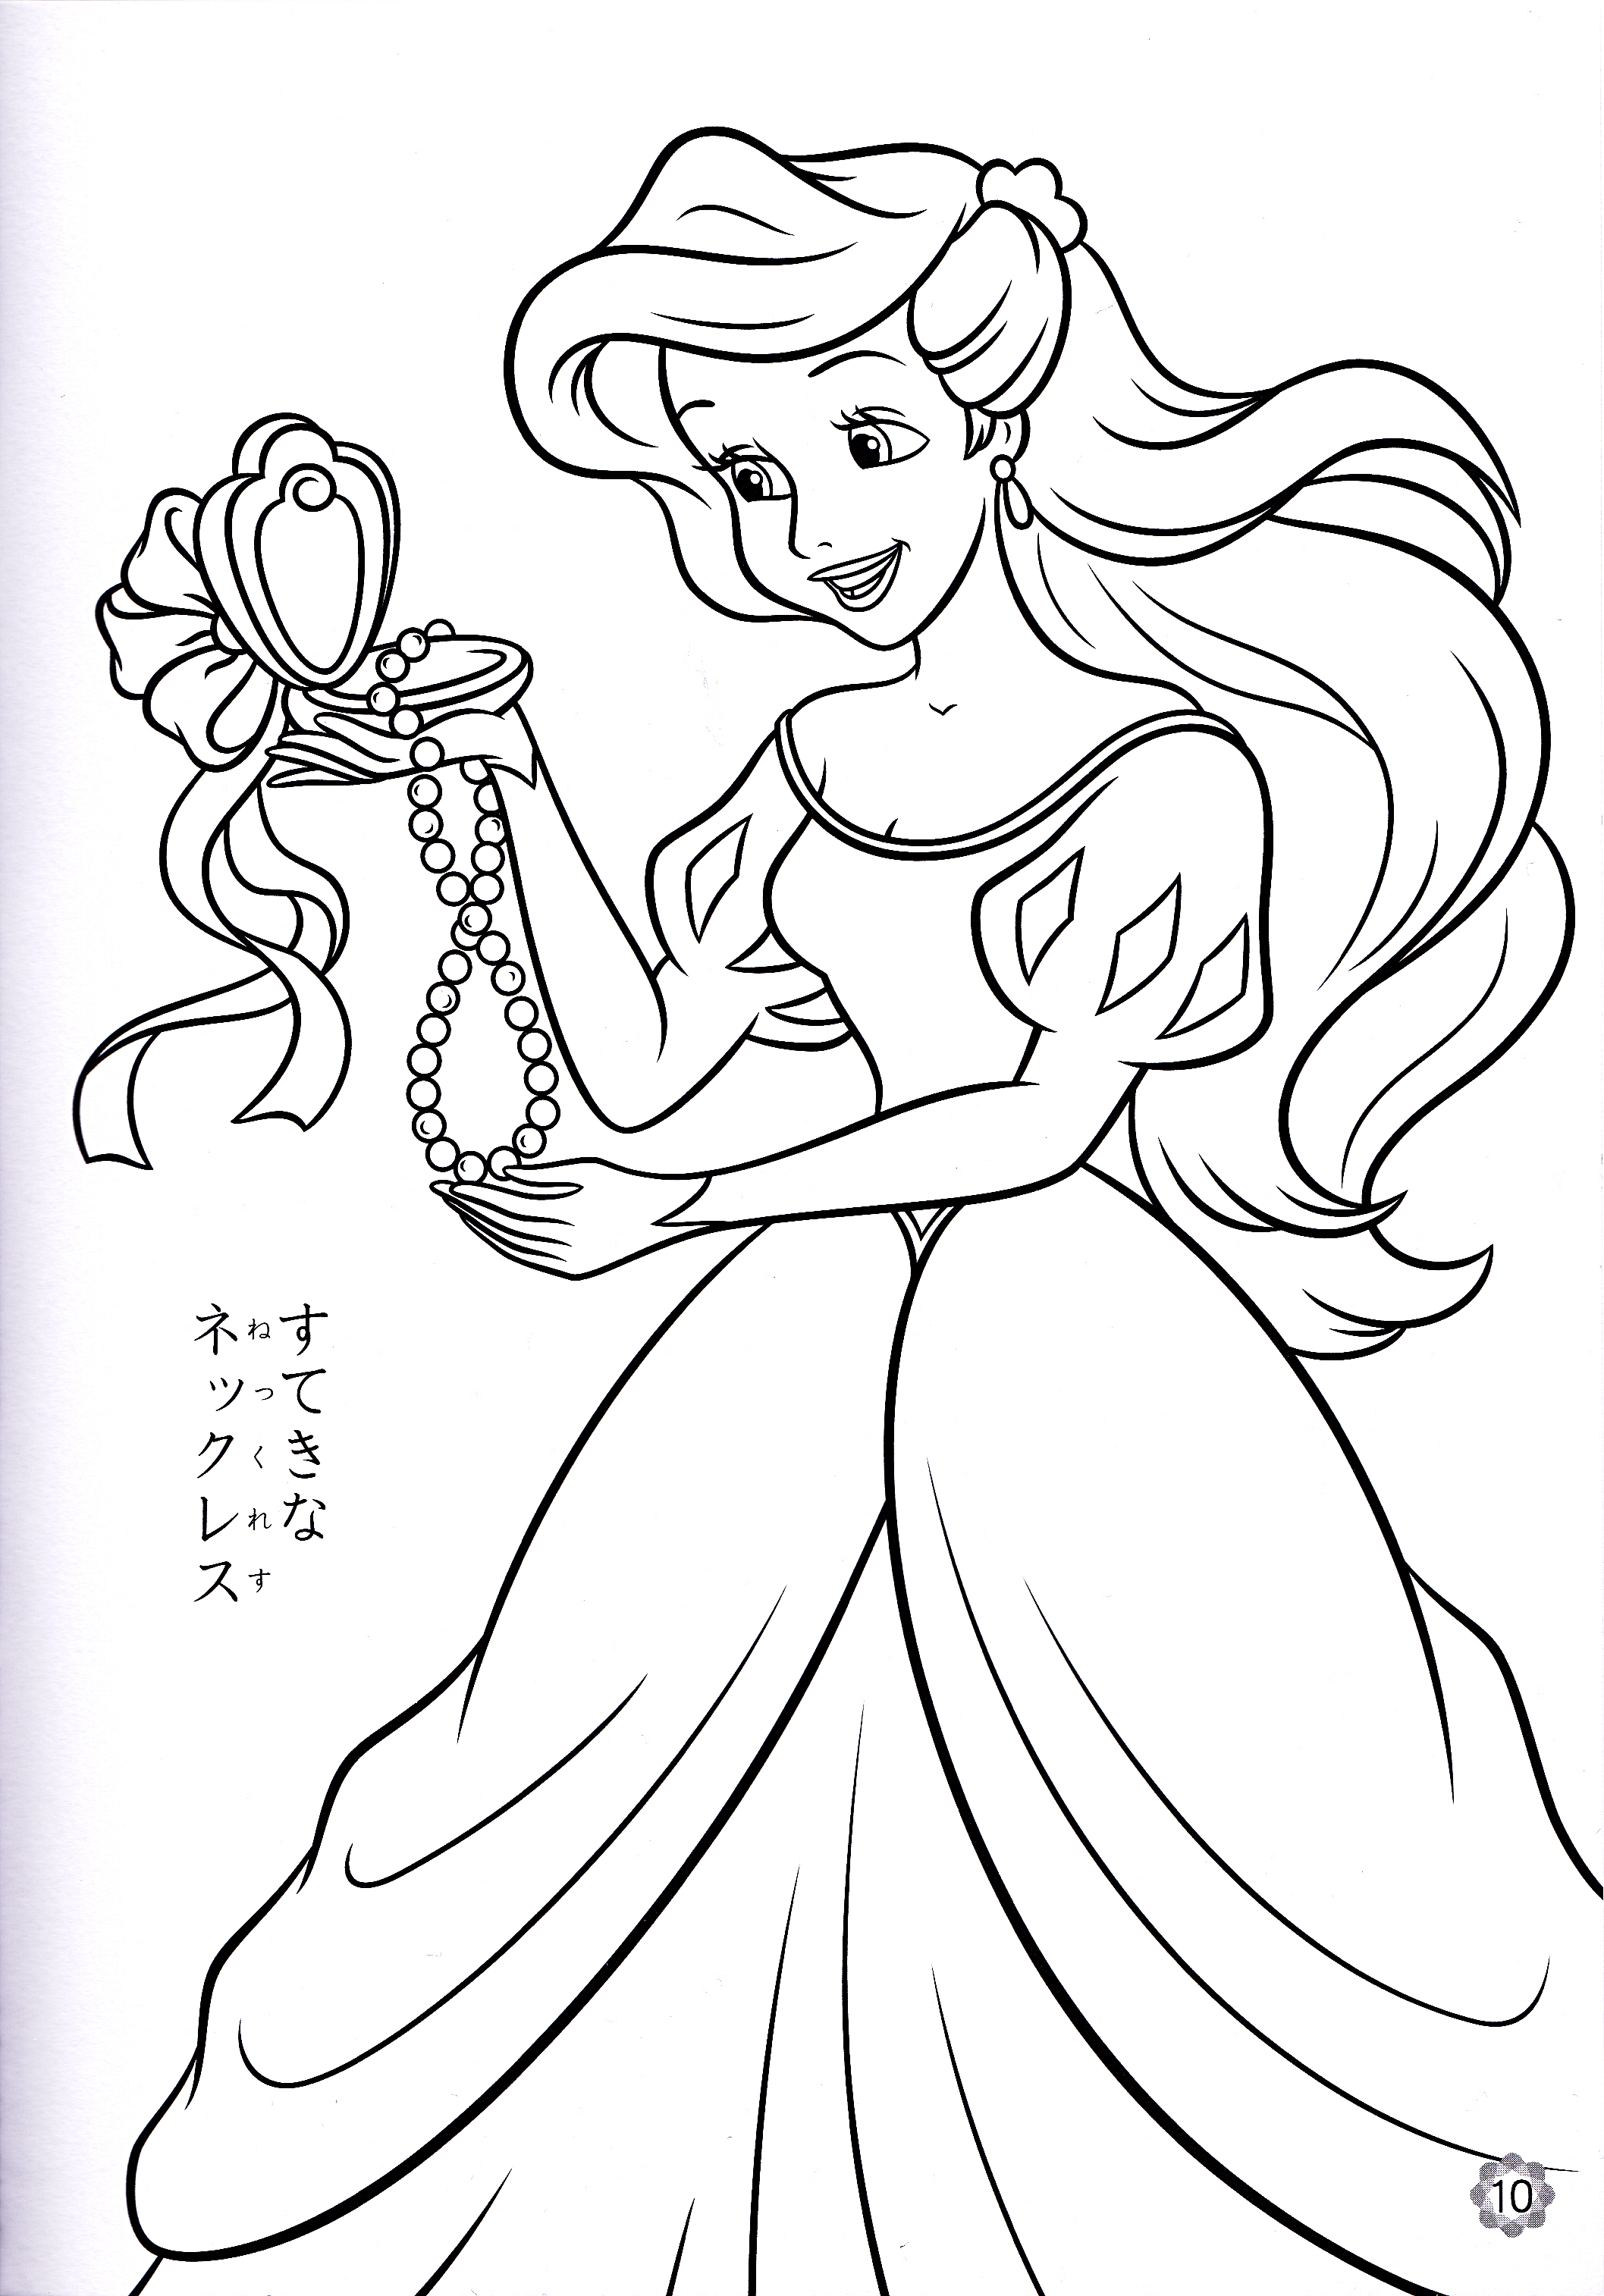 disney princesss coloring pages - photo#25